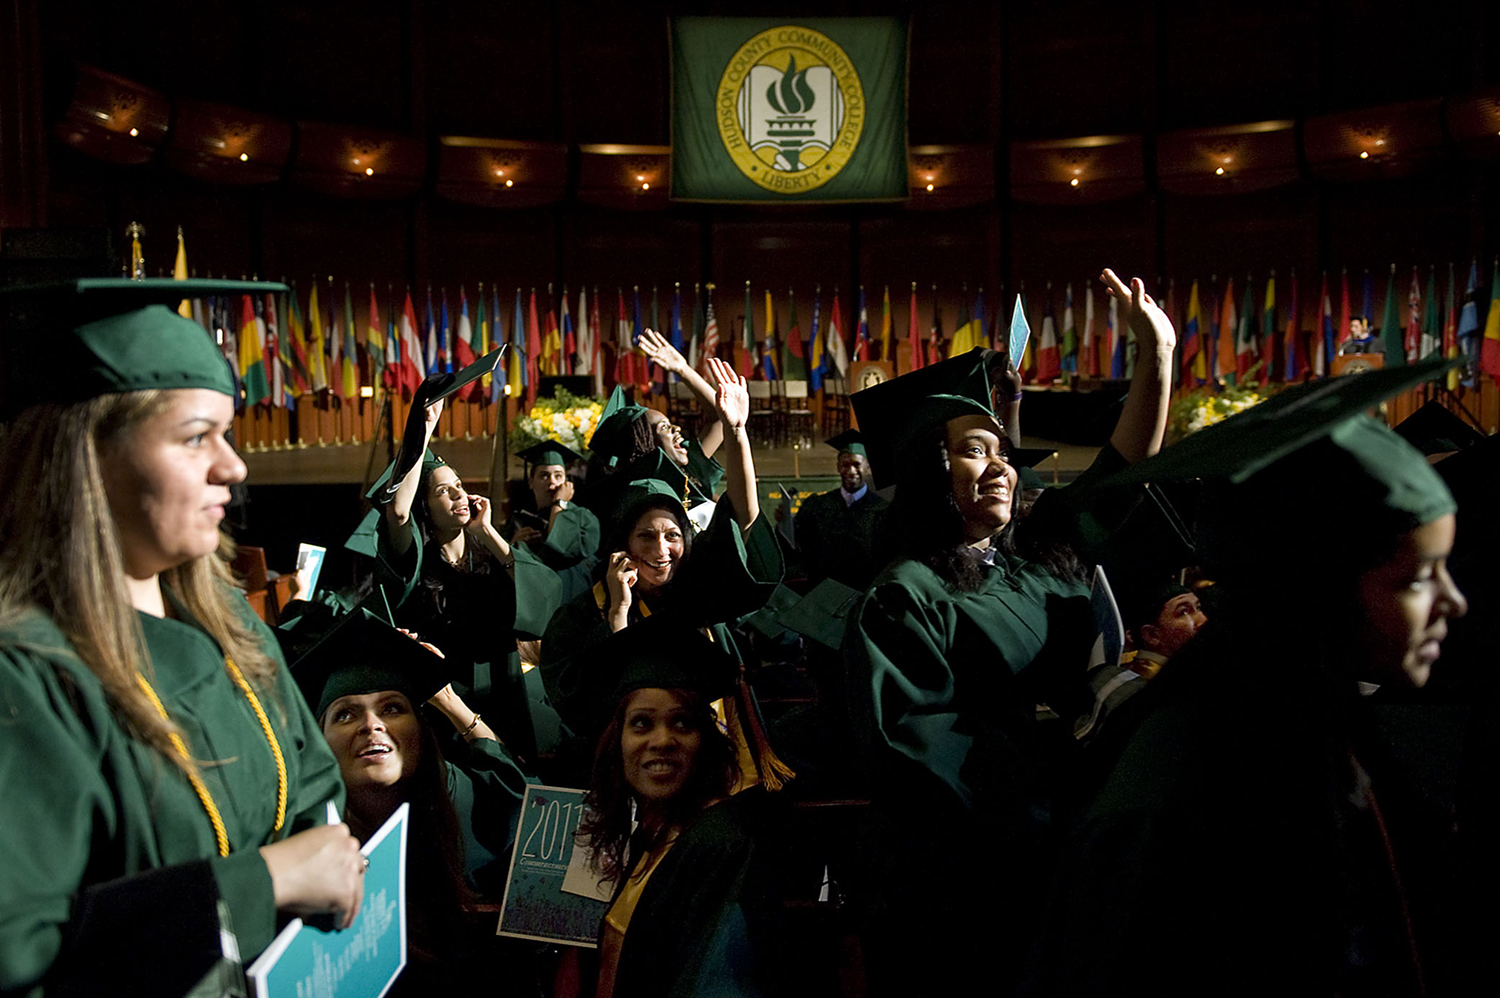 Graduates wave to the their loved ones in the audience before the start of the Hudson County Community College graduation ceremony at The New Jersey Performing Arts Center. (Reena Rose Sibayan | The Jersey Journal)